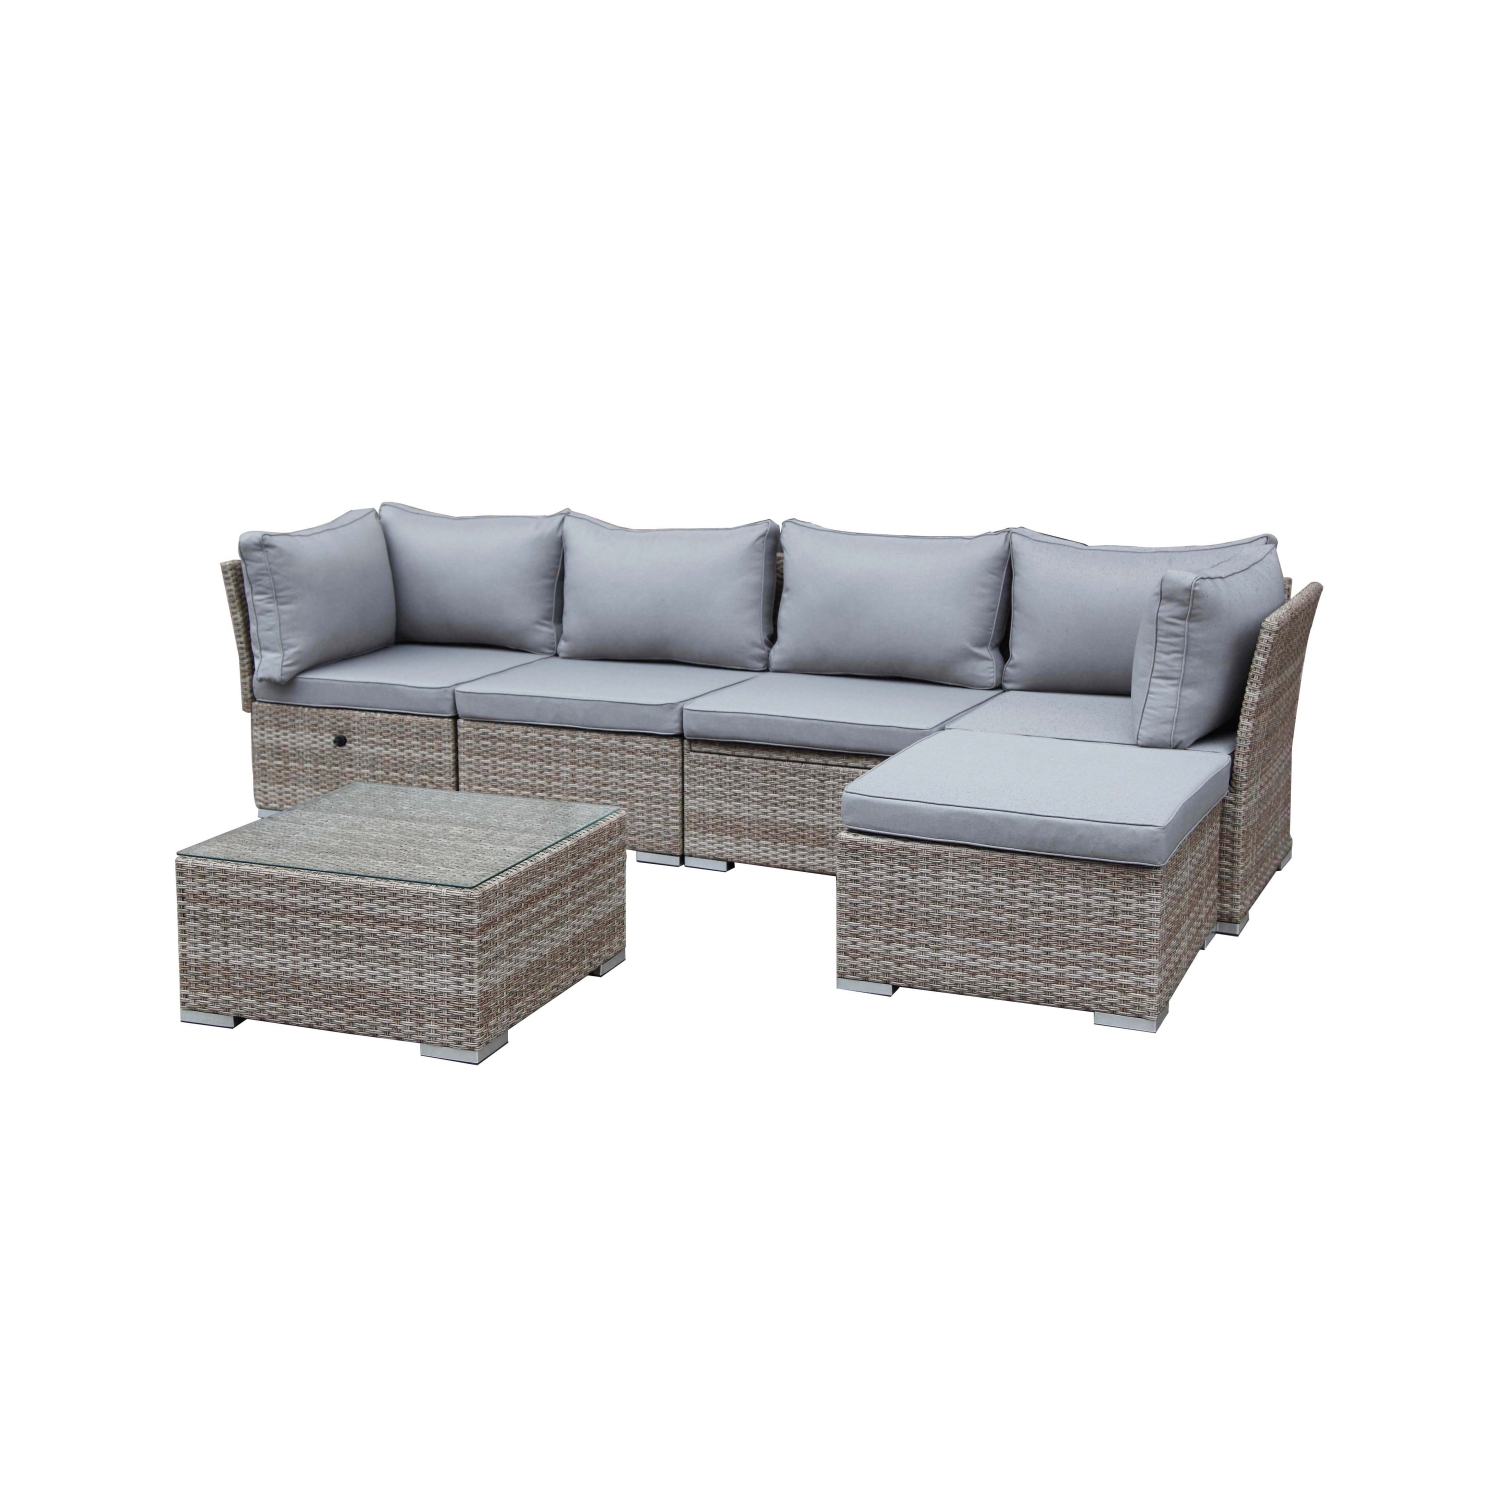 Baumarkt g llnitz online shop greemotion lounge set for Greemotion gartenmobel